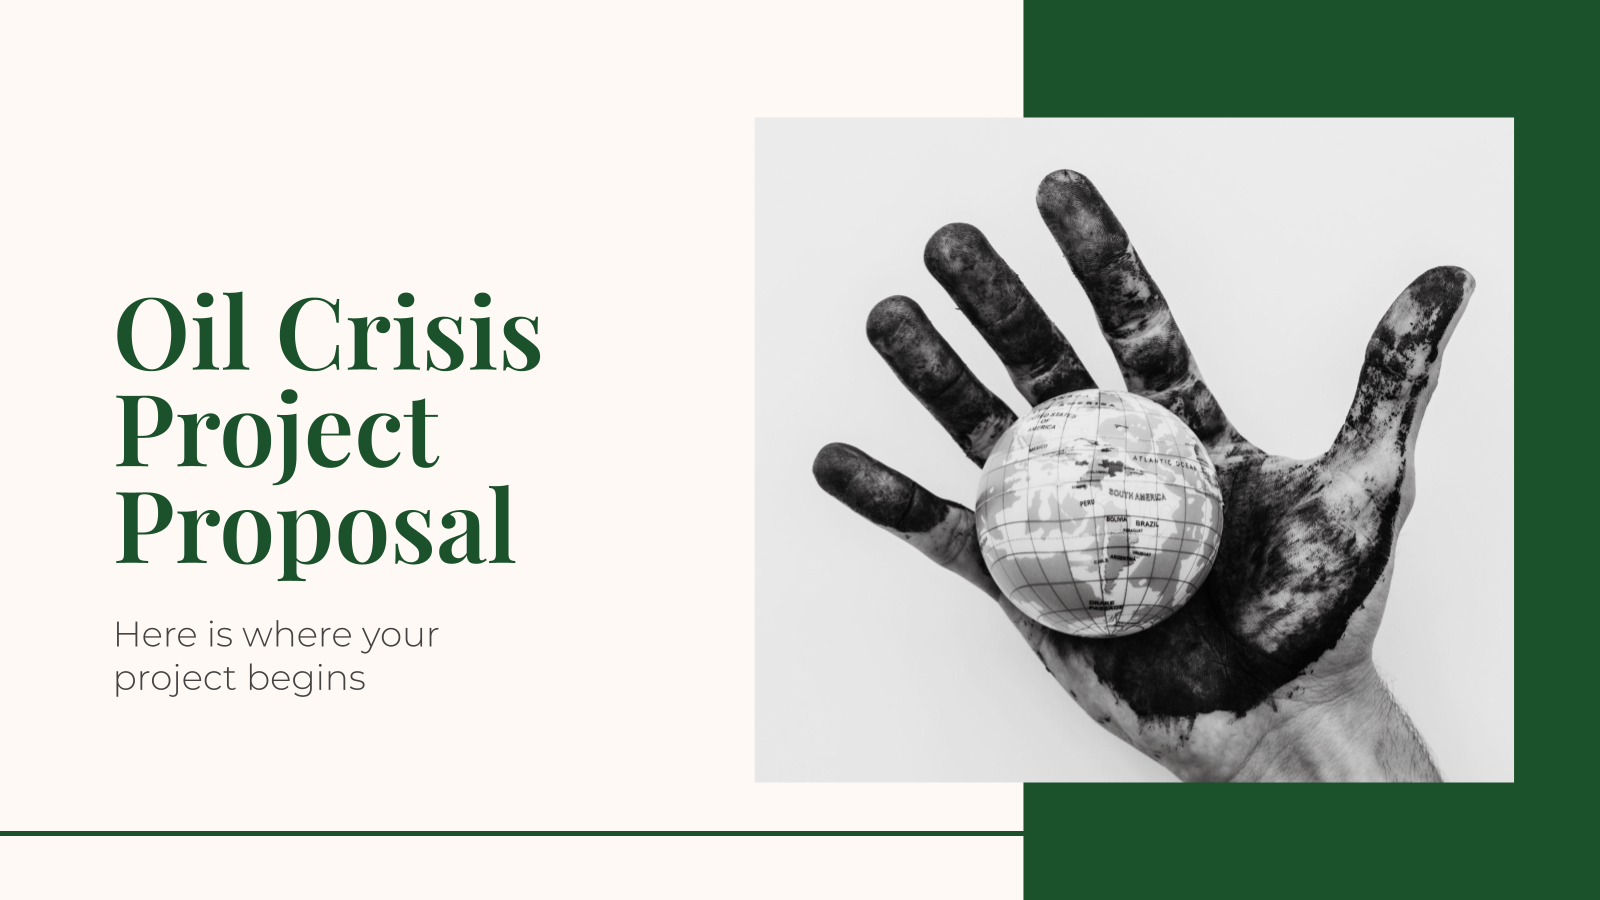 Oil Crisis Project Proposal presentation template